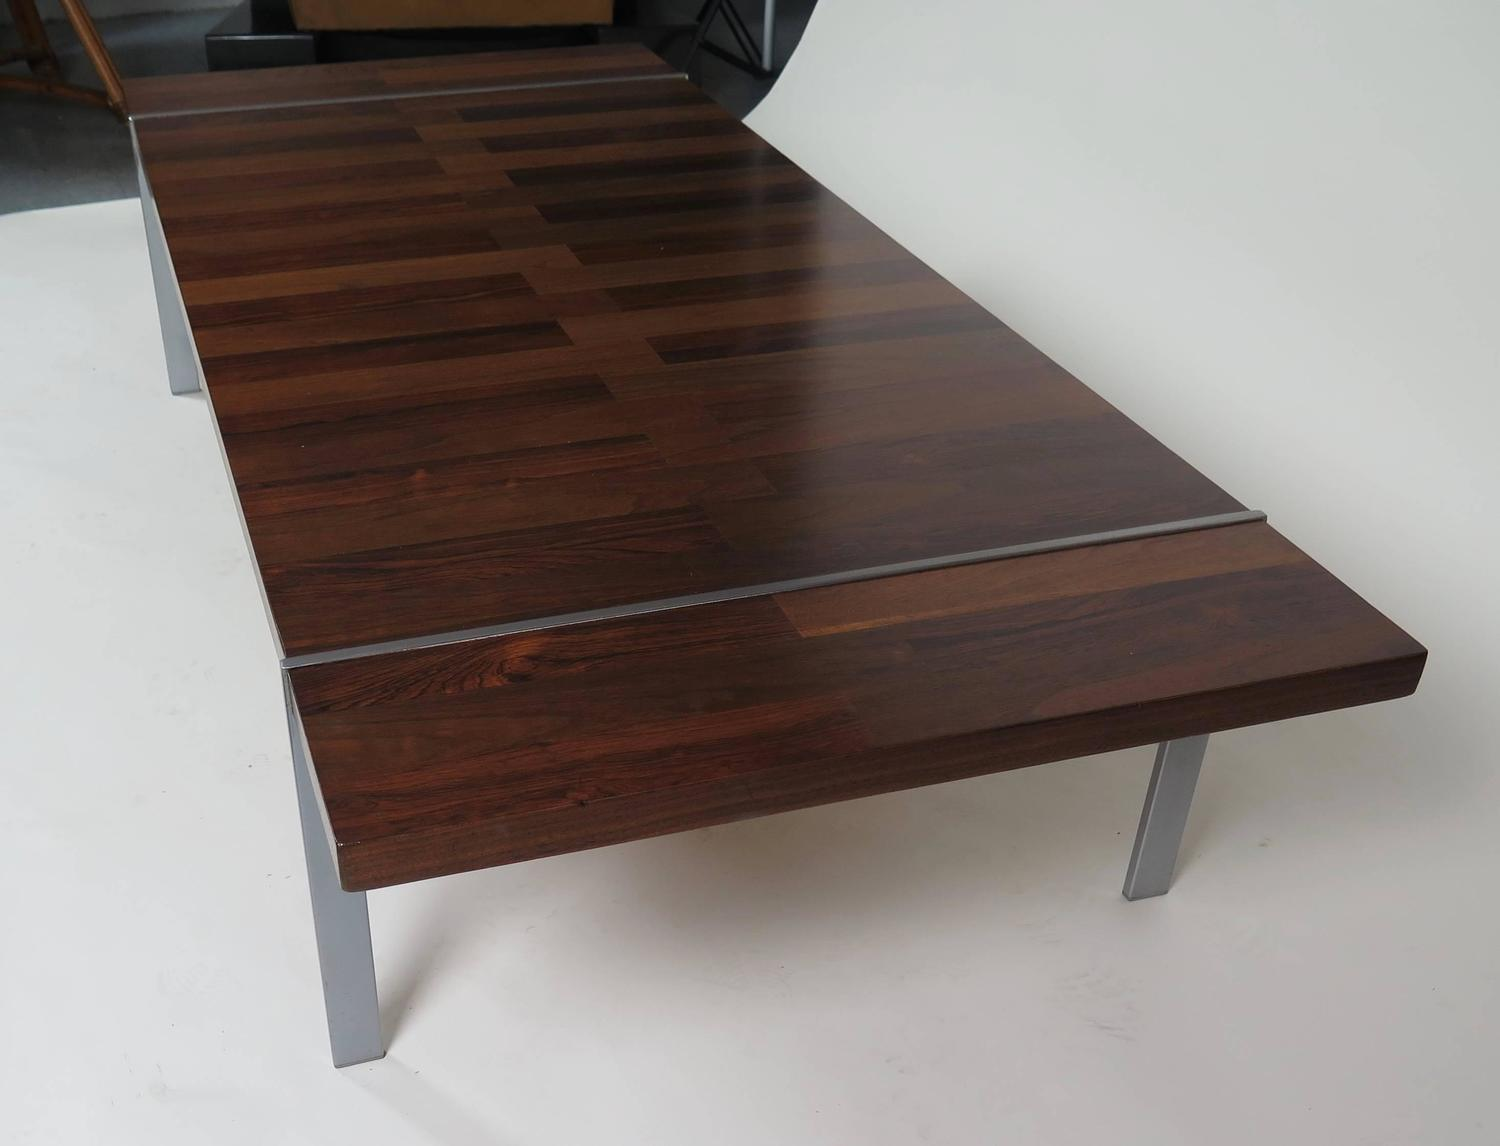 Unusual lane rosewood and walnut coffee table for sale at for Unusual tables for sale